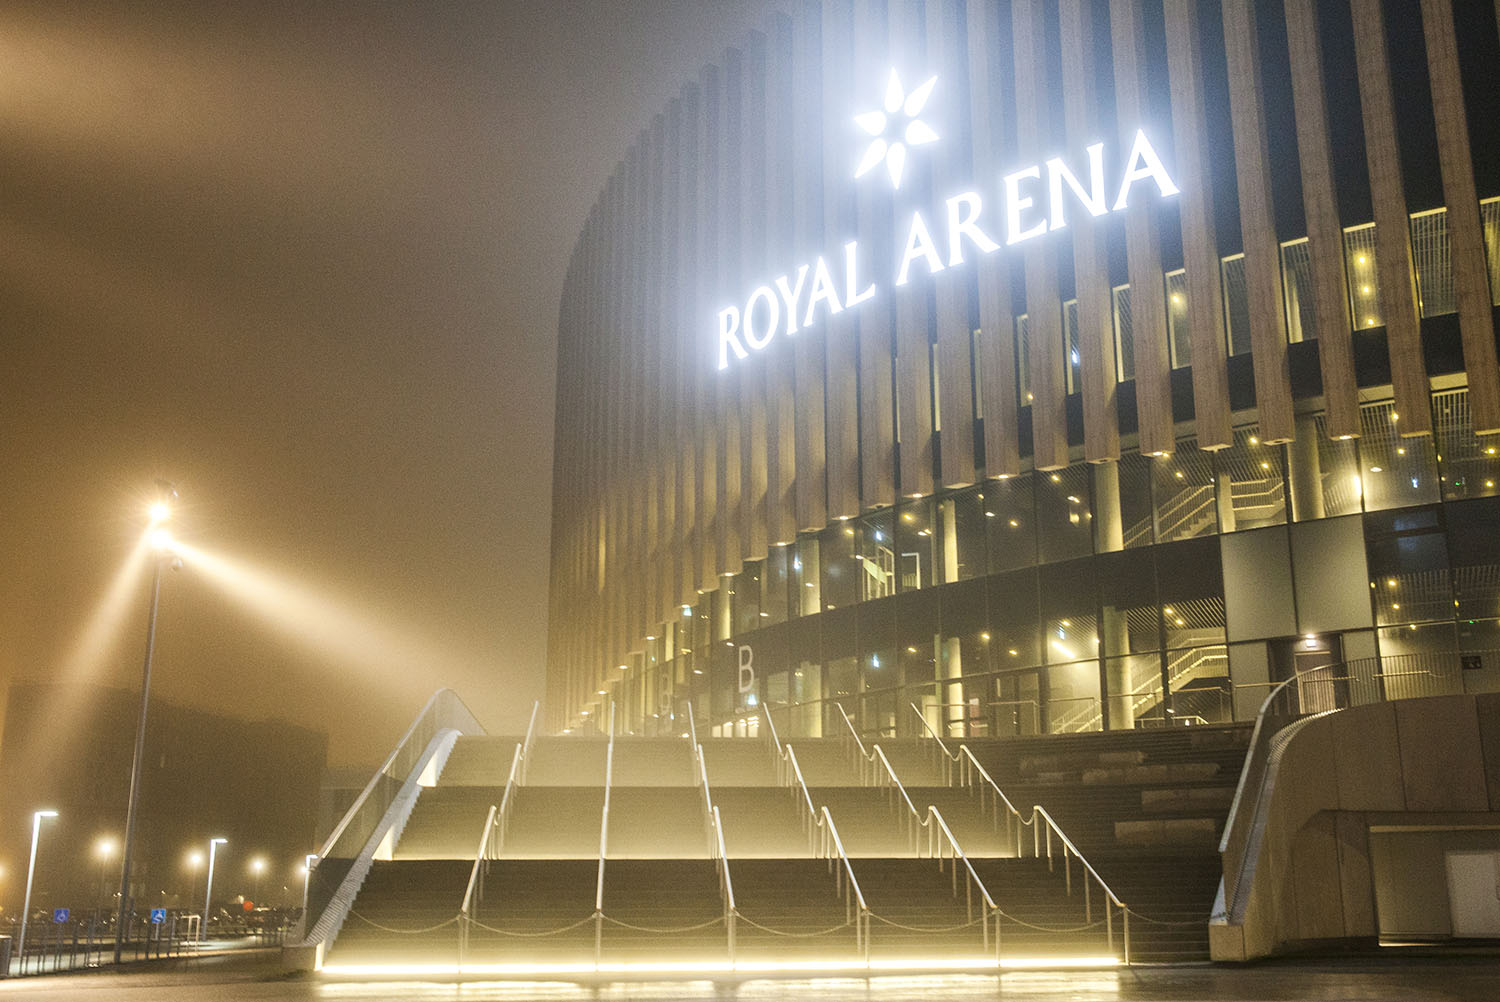 RoyalArena_HelenaLundquist_18_small